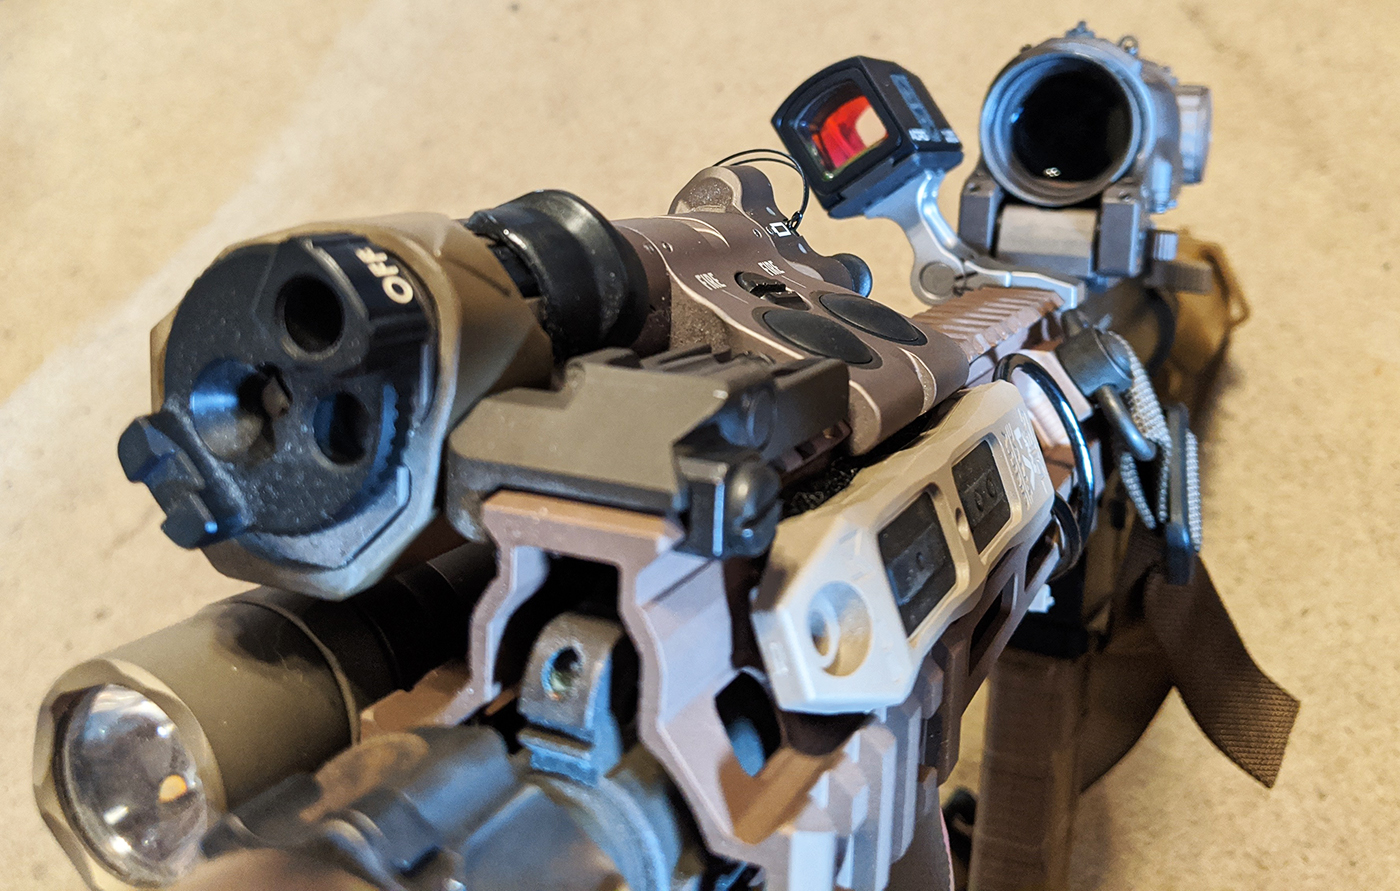 Switchology: Surefire M600DF and BE Meyers MAWL with TAPS Sync from Unity Tactical on DARC-based HK416 CQB carbine.